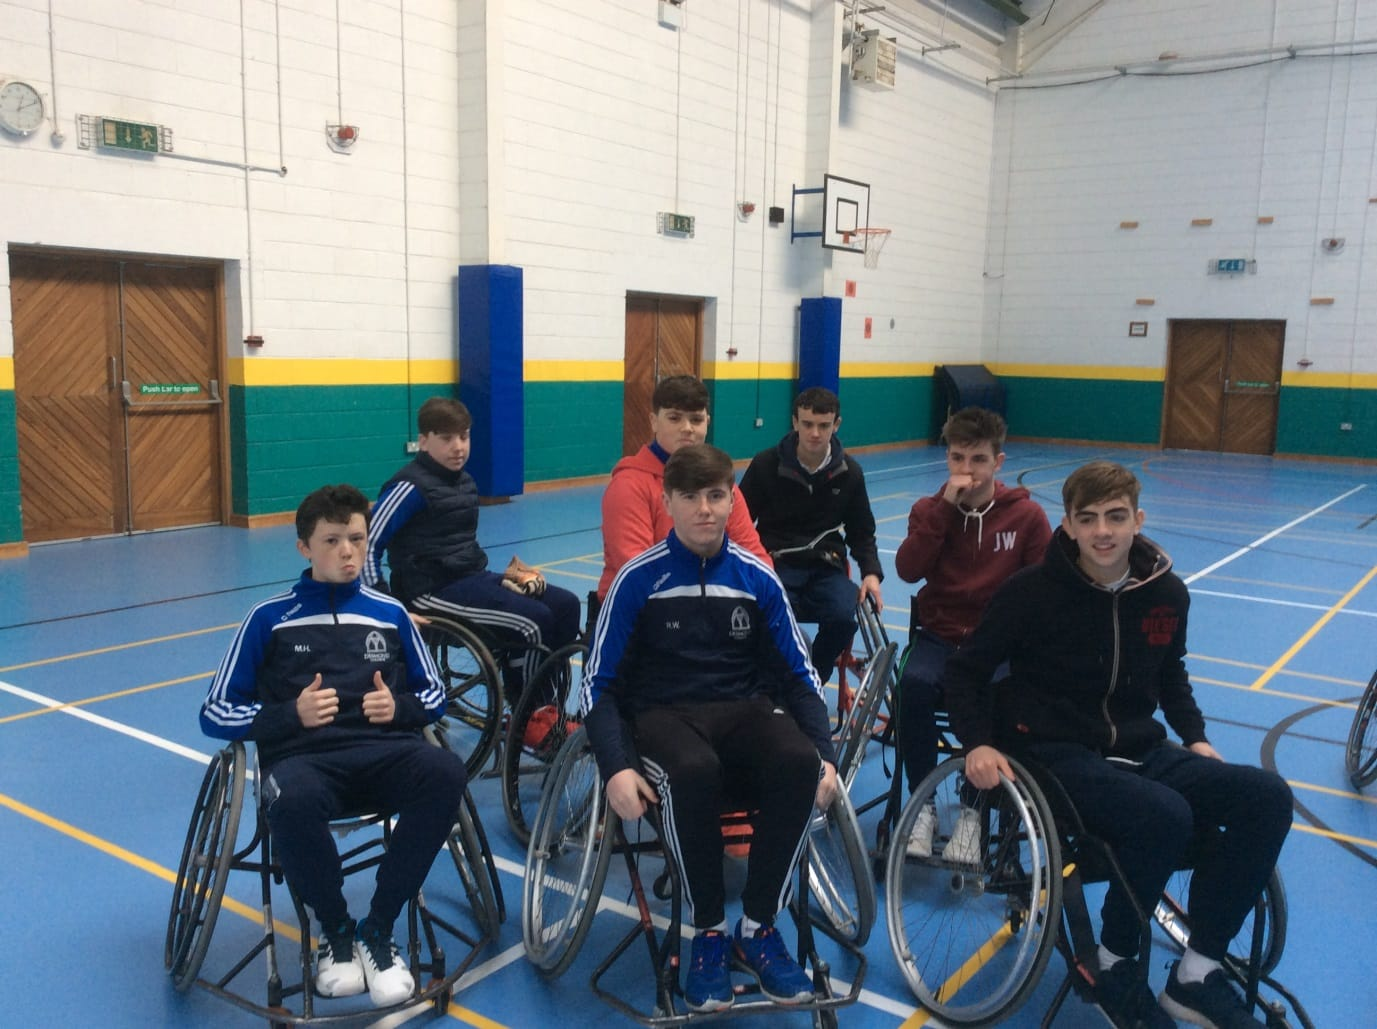 Feb 2016: Wheelchair Basketball Workshop given by the Irish Wheelchair Association for Desmond College Transition Year Students